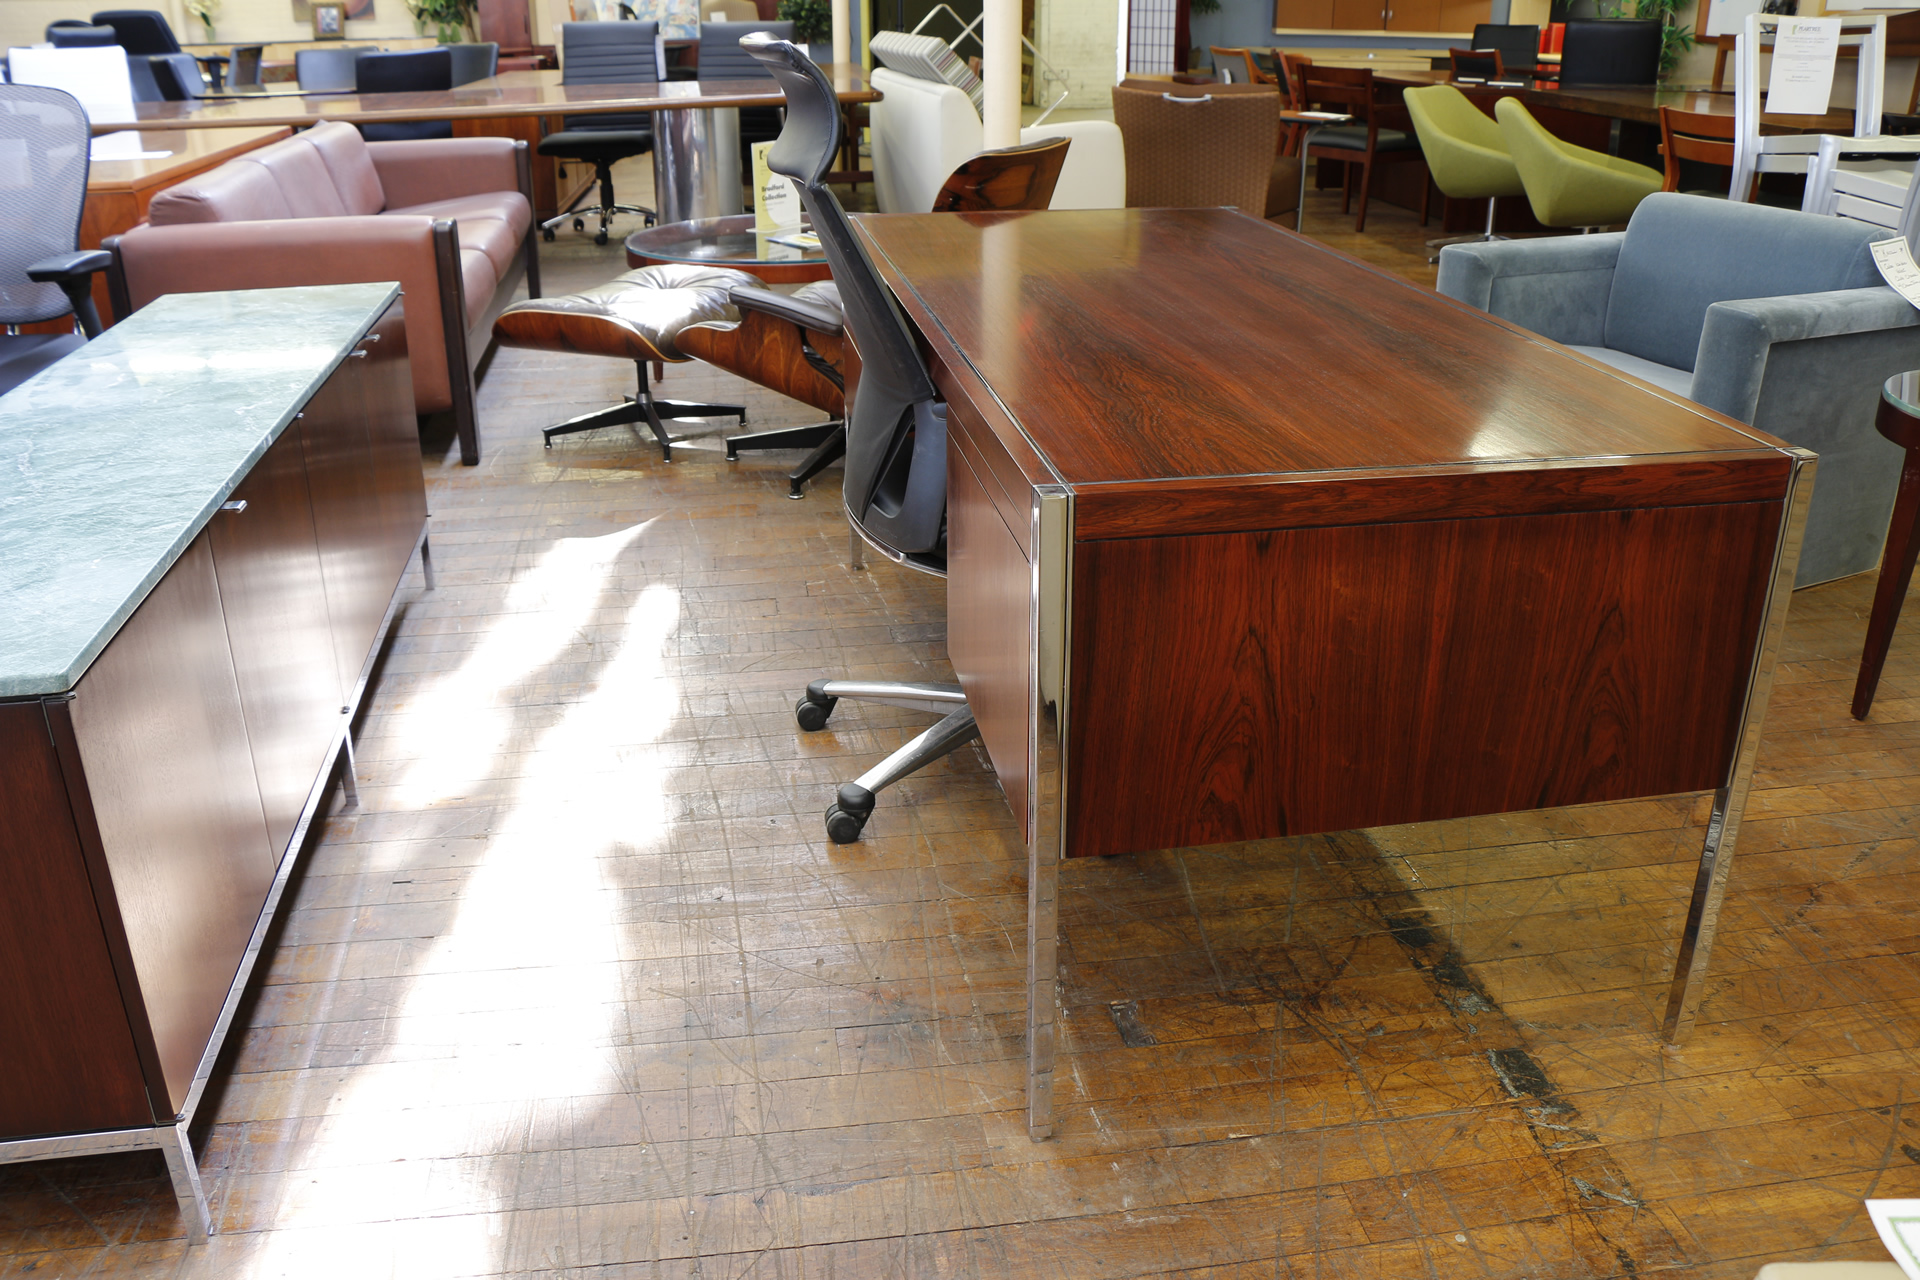 peartreeofficefurniture_peartreeofficefurniture_mg_4450.jpg